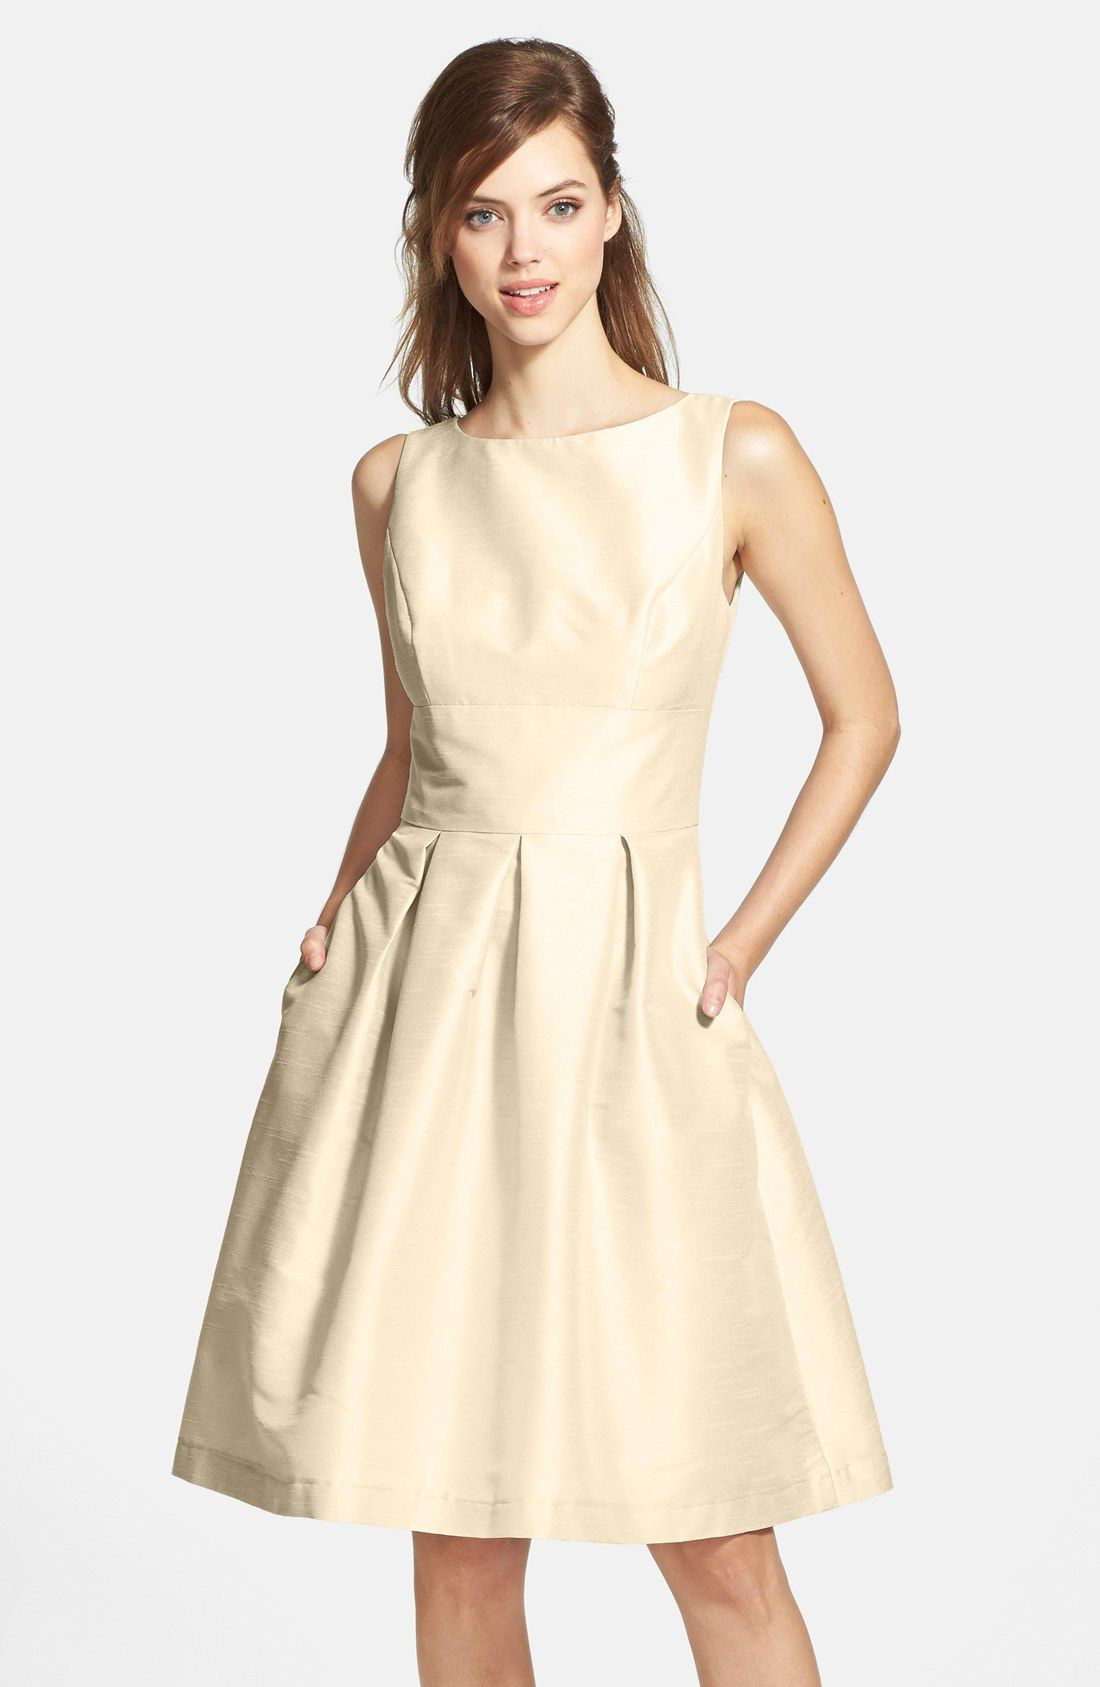 Dupioni fit flare dress alfred sung fit flare dress and dress alfred sung dupioni fit flare dress ombrellifo Gallery